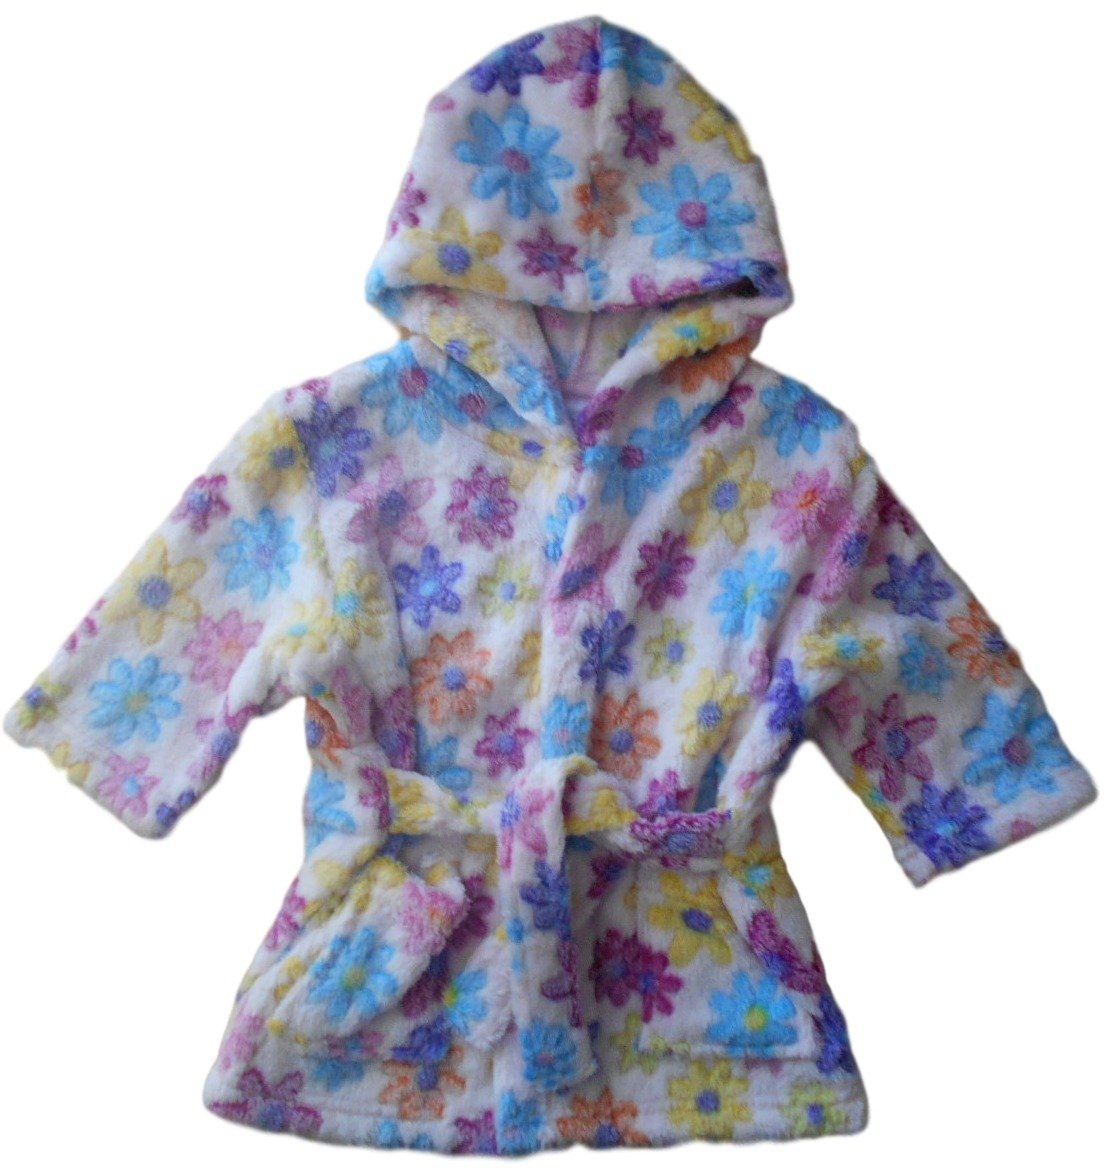 6-12 months - Baby Girls Fluffy Pink Multicoloured Floral Hooded Dressing Gown Soft Touch